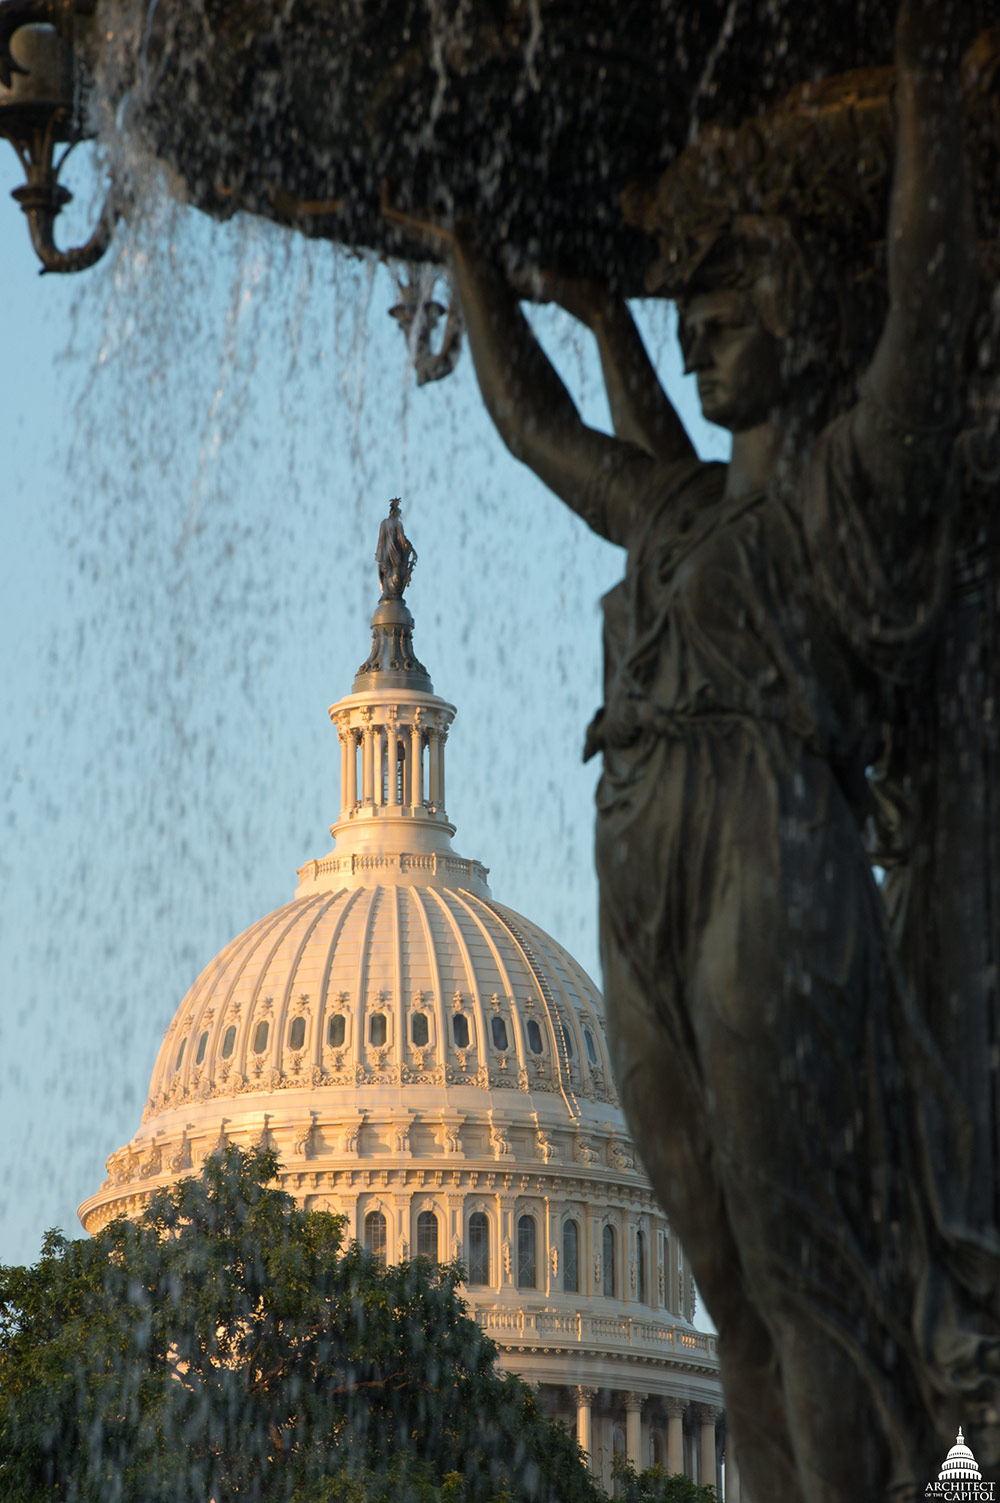 View of the Capitol Dome from Bartholdi Fountain.